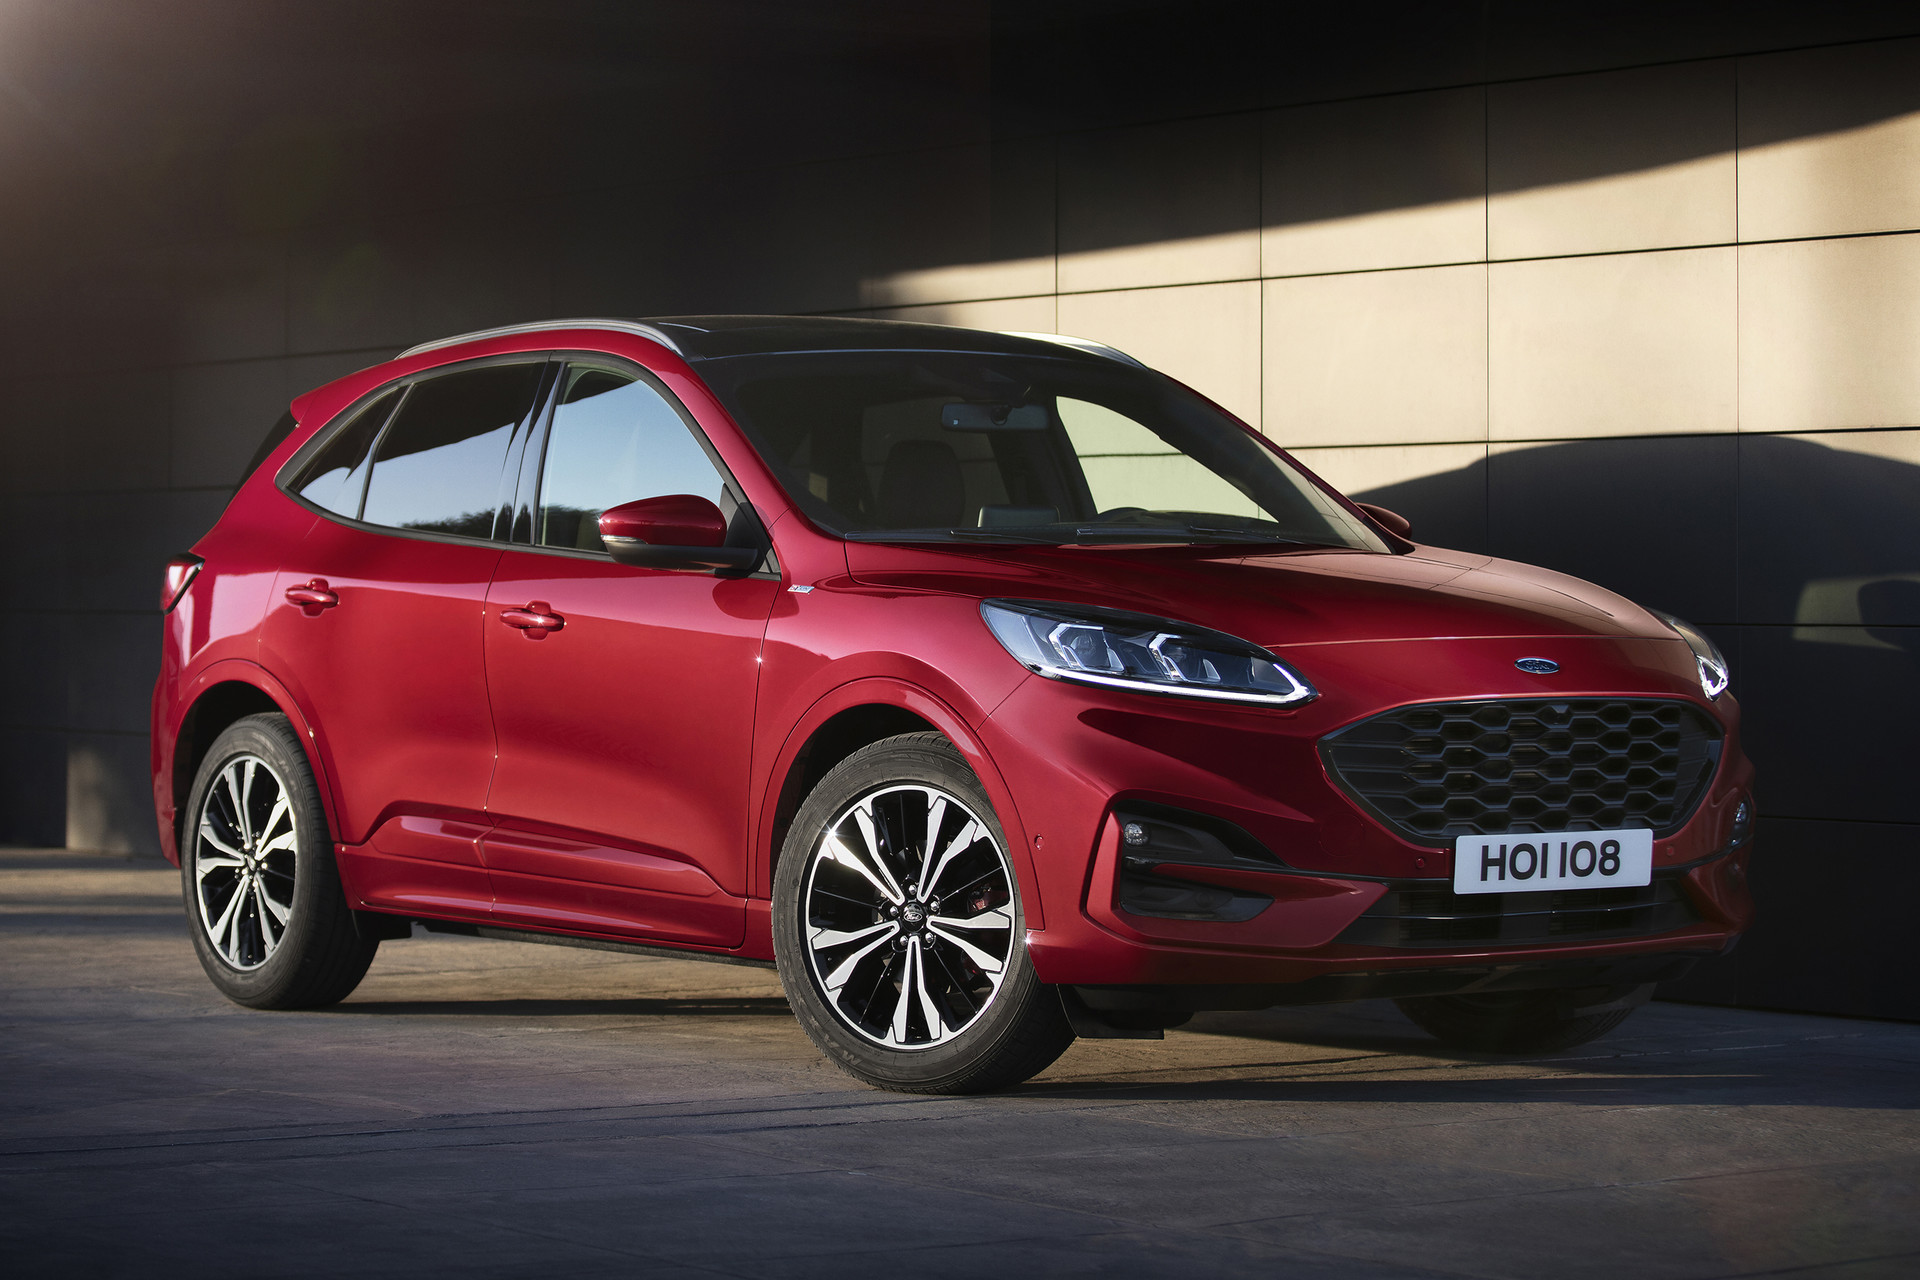 De 7-persoons Ford Kuga uit 2021